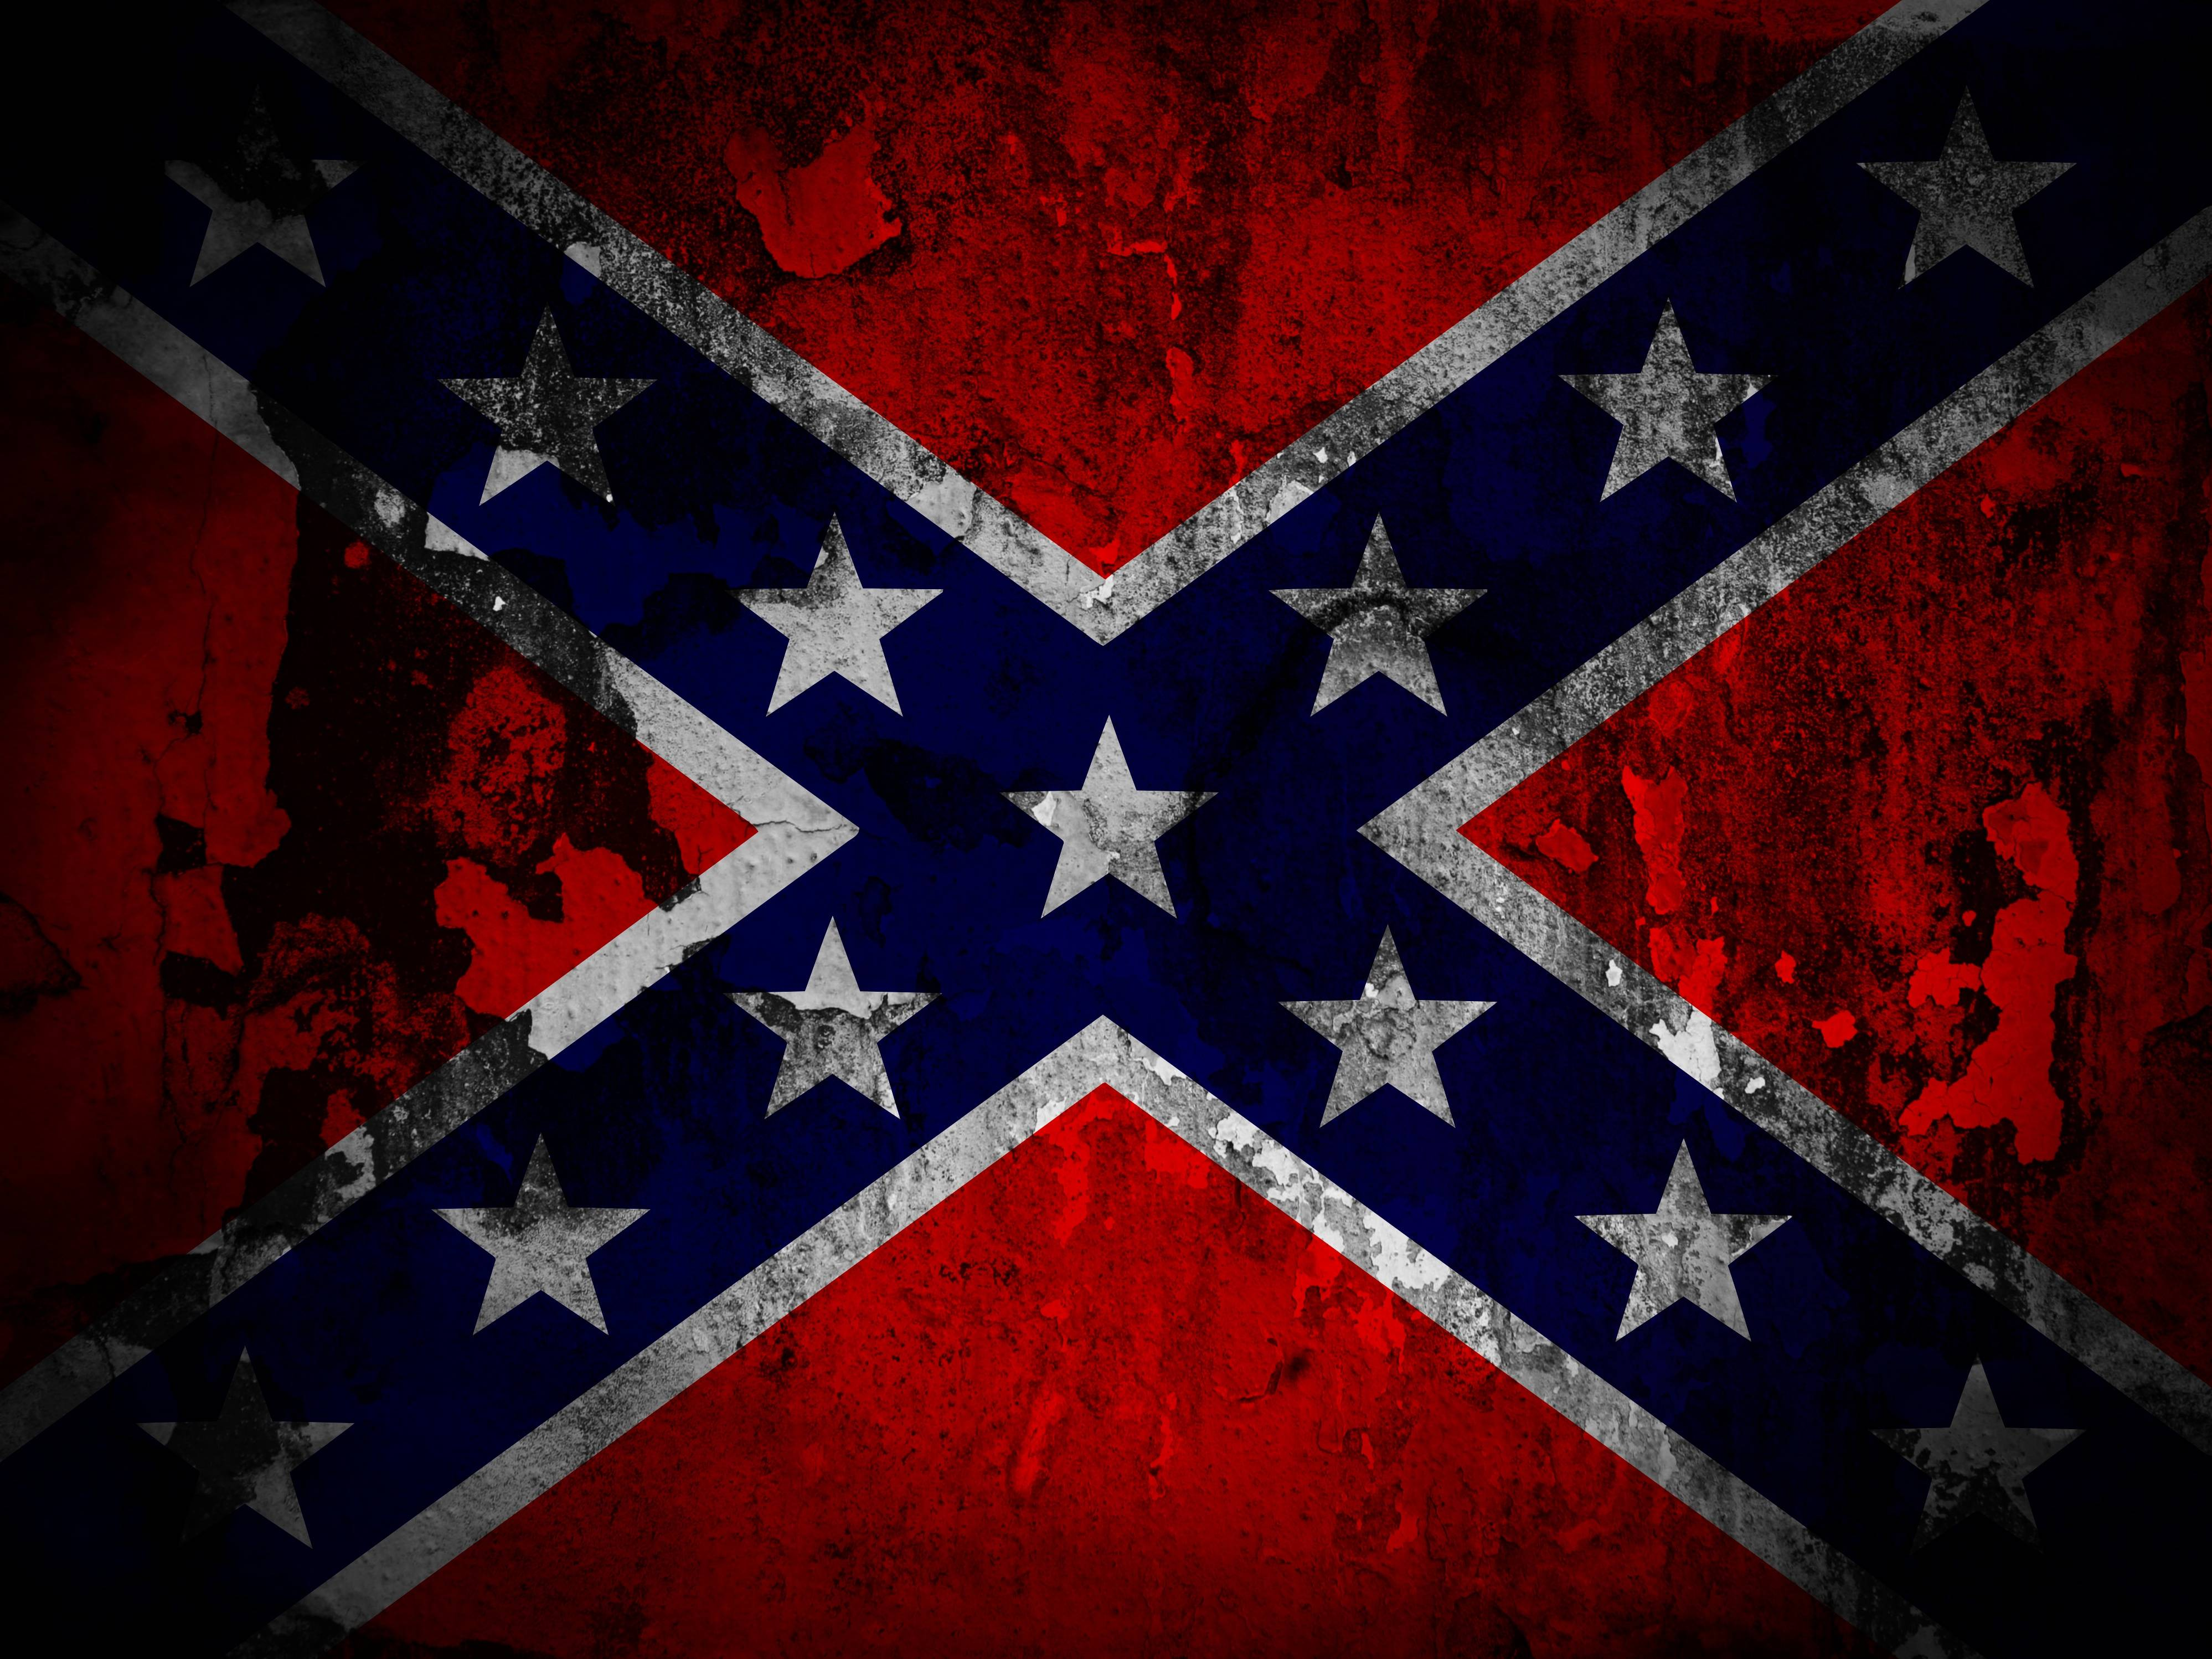 Confederate Flag Wallpapers 12423 HD Desktop Backgrounds and 3995x2996